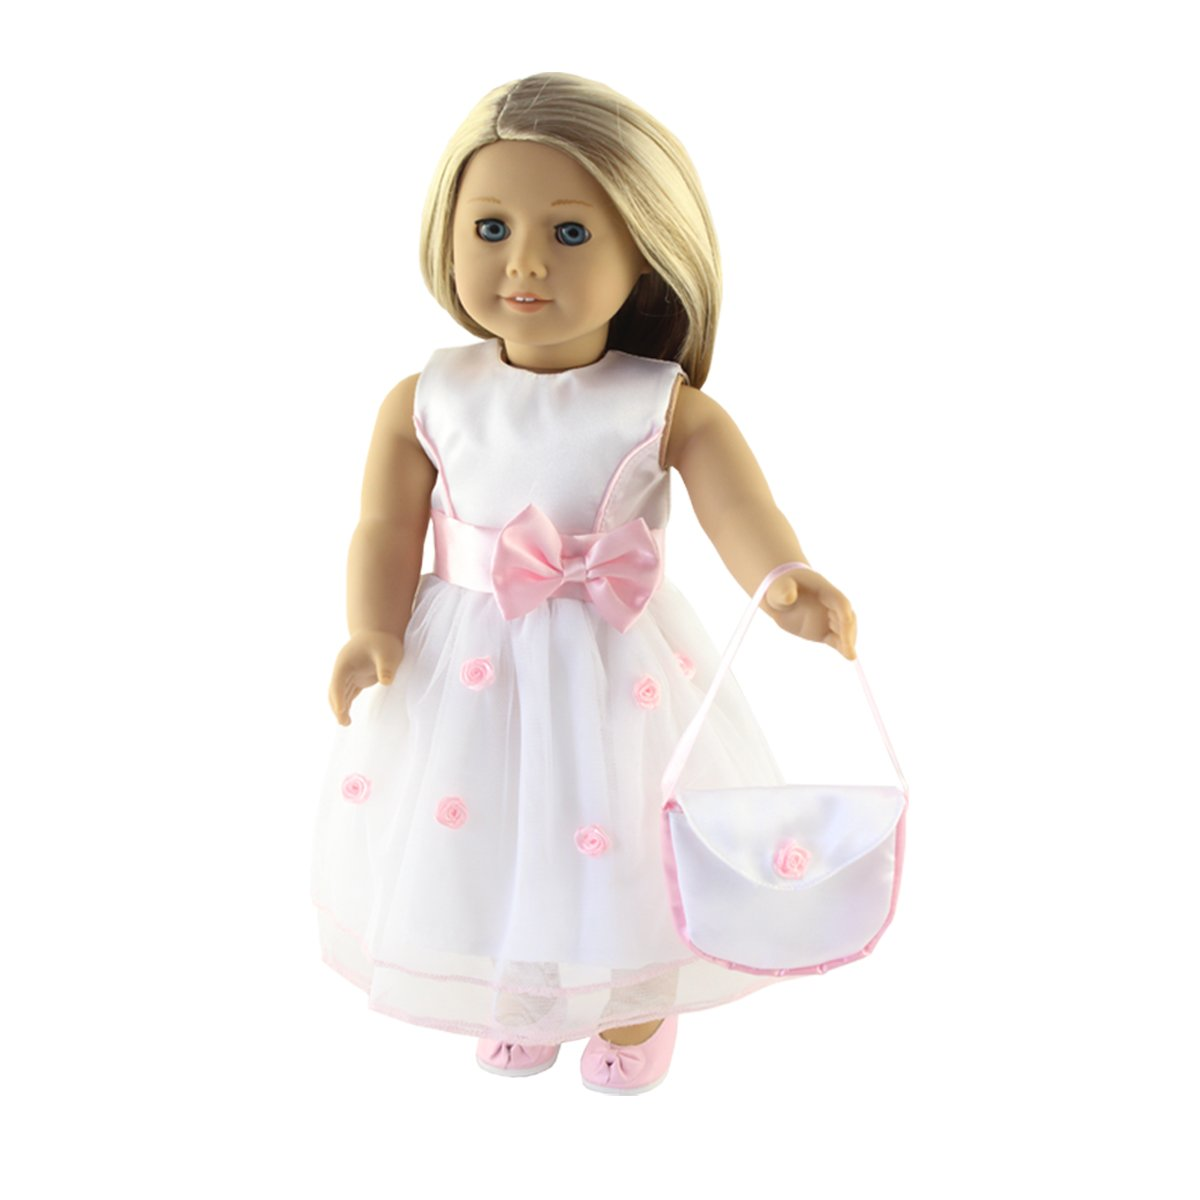 Modern Doll Furniture & Play Accs Silver Purse Bag for American Girl & Wellie Doll Clothes Accessory FREE PHONE!